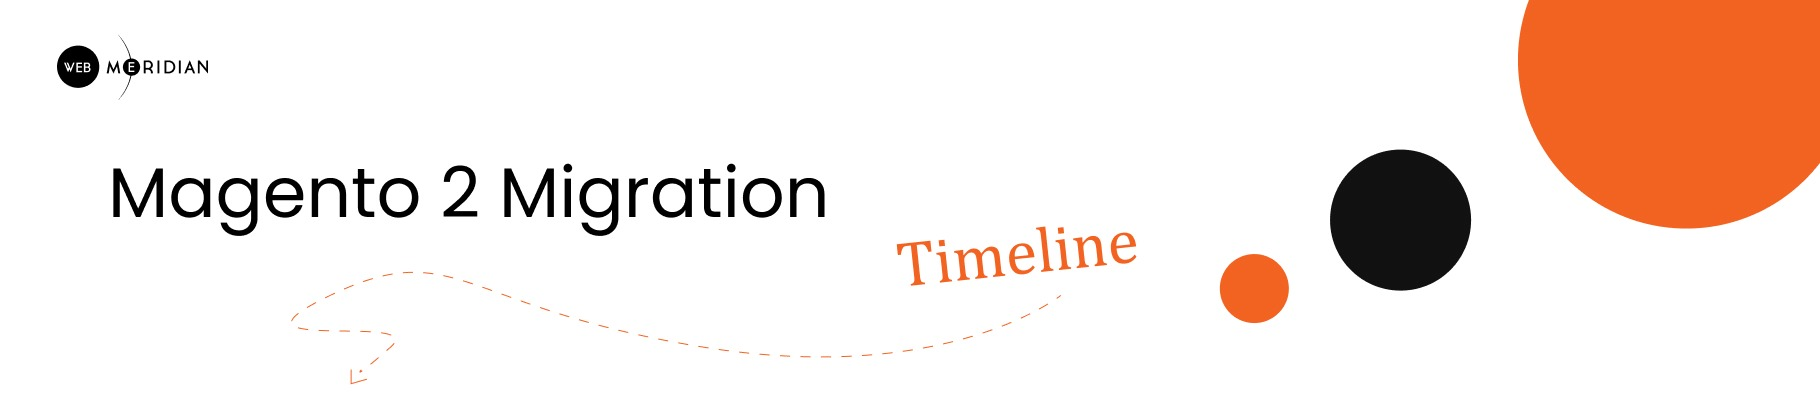 magento 1 to 2 migration cost and timeline